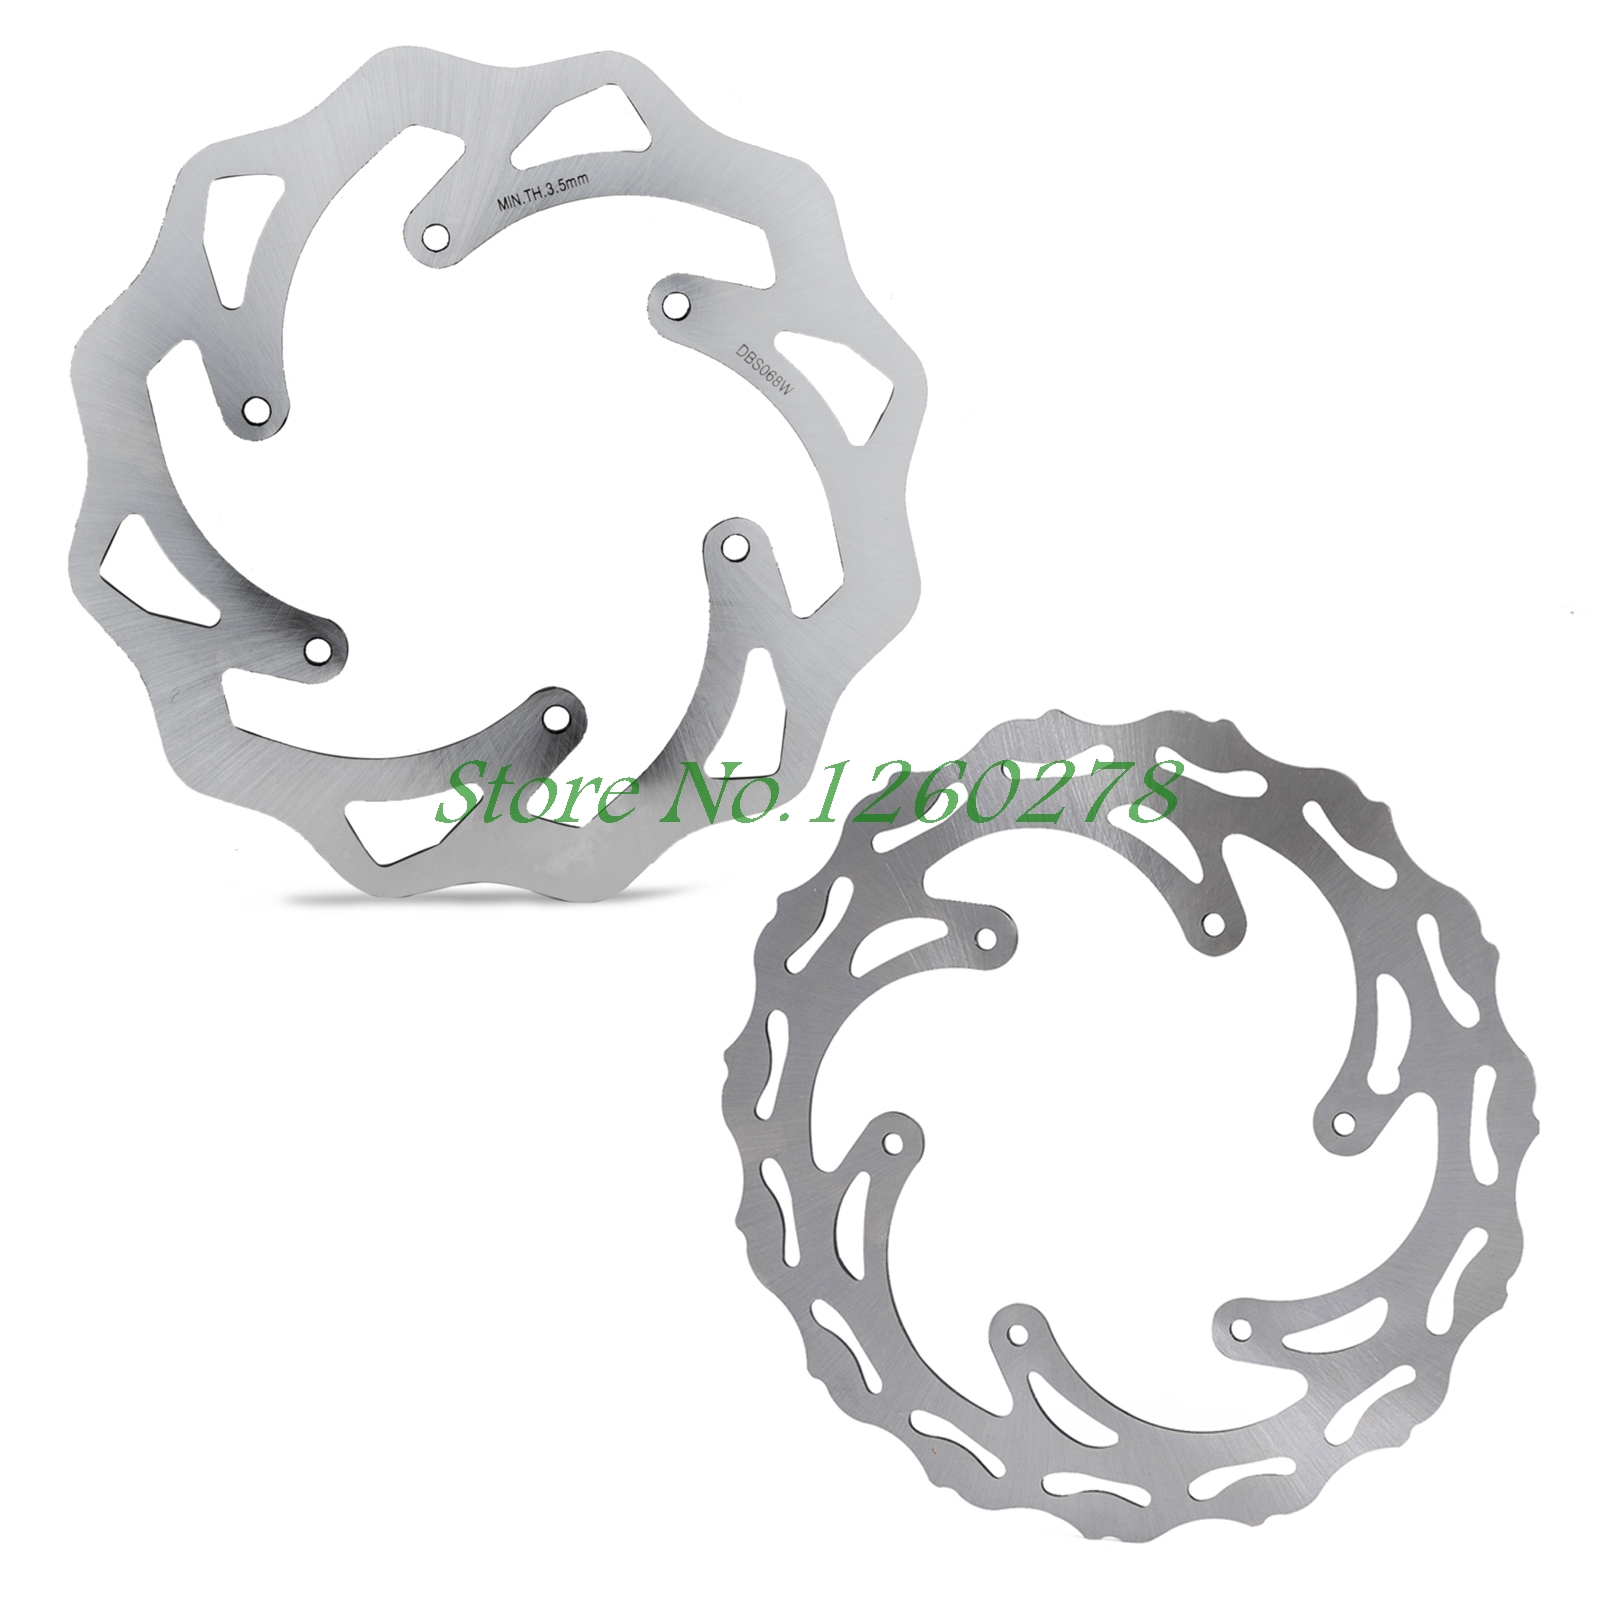 цены Motorcycle Front Rear Steel Brake Discs Rotors For Husaberg Husqvarna FC FX TC FE TE 125 250 300 350 450 501 2013 2014 2015